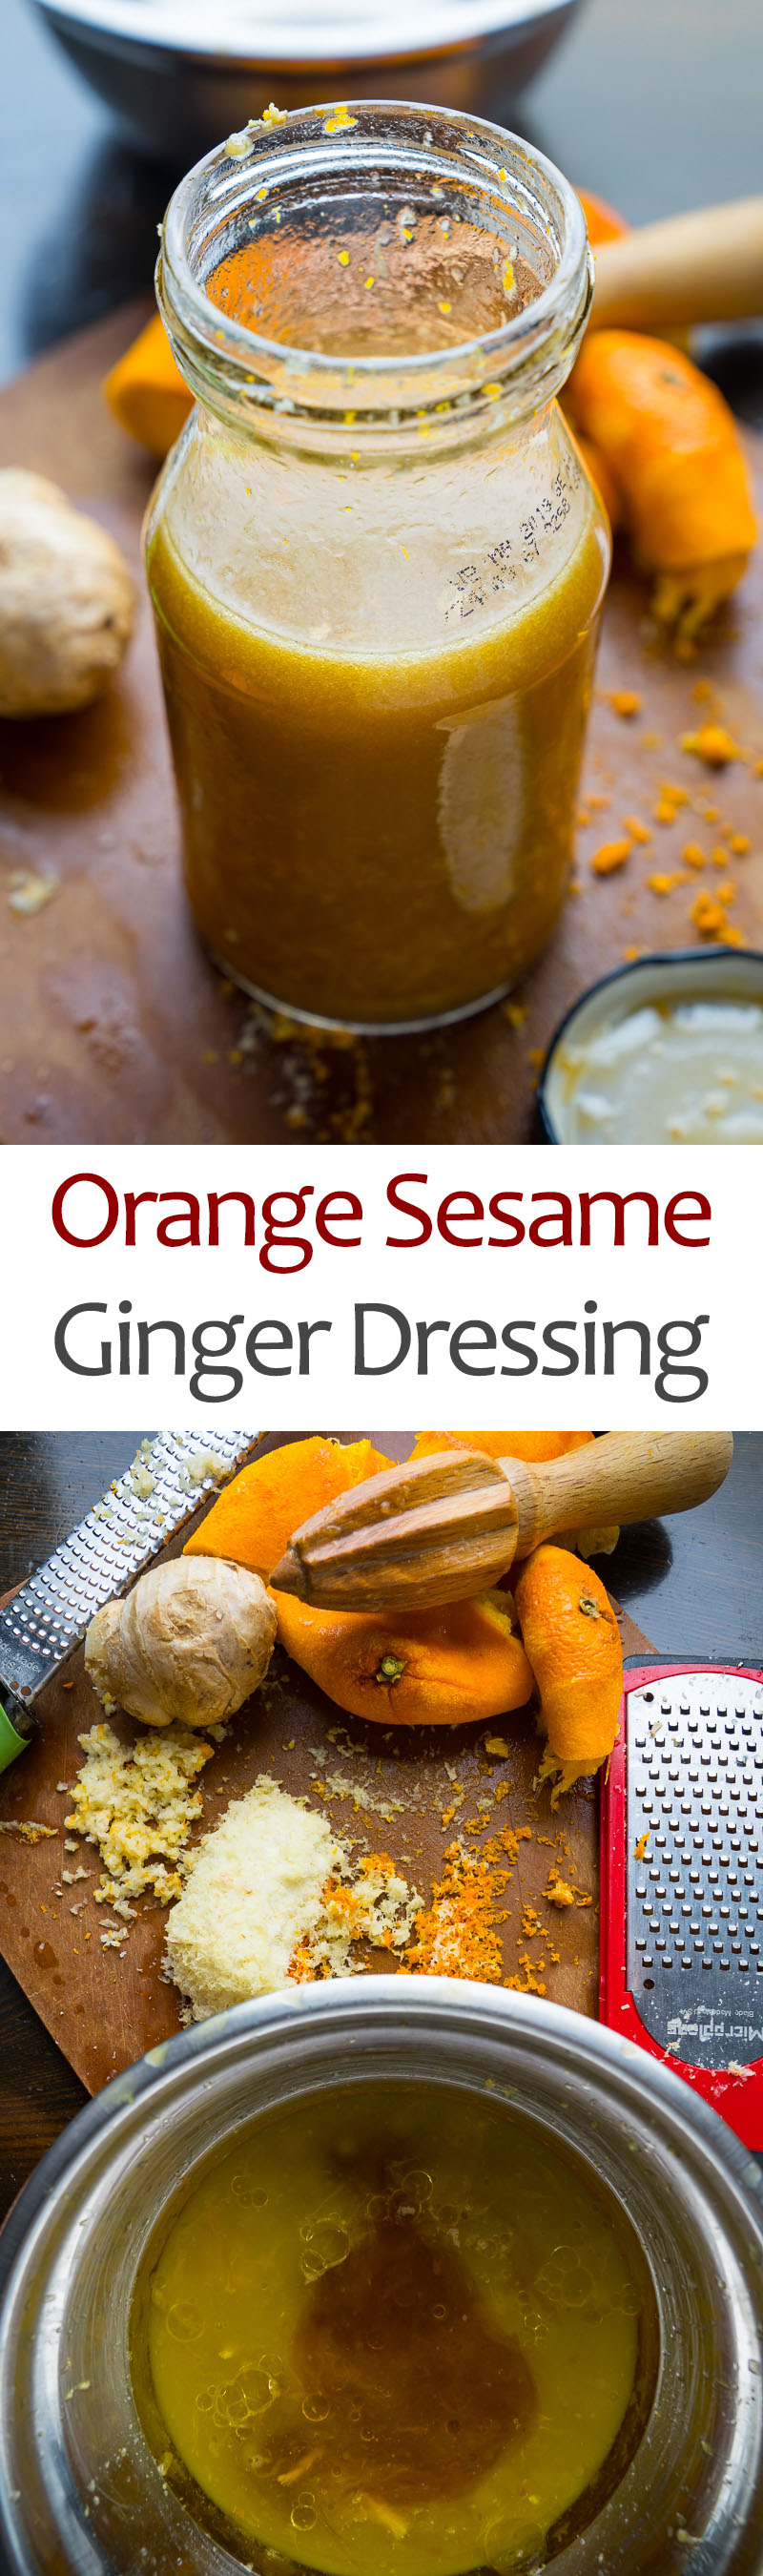 Orange Sesame Ginger Dressing